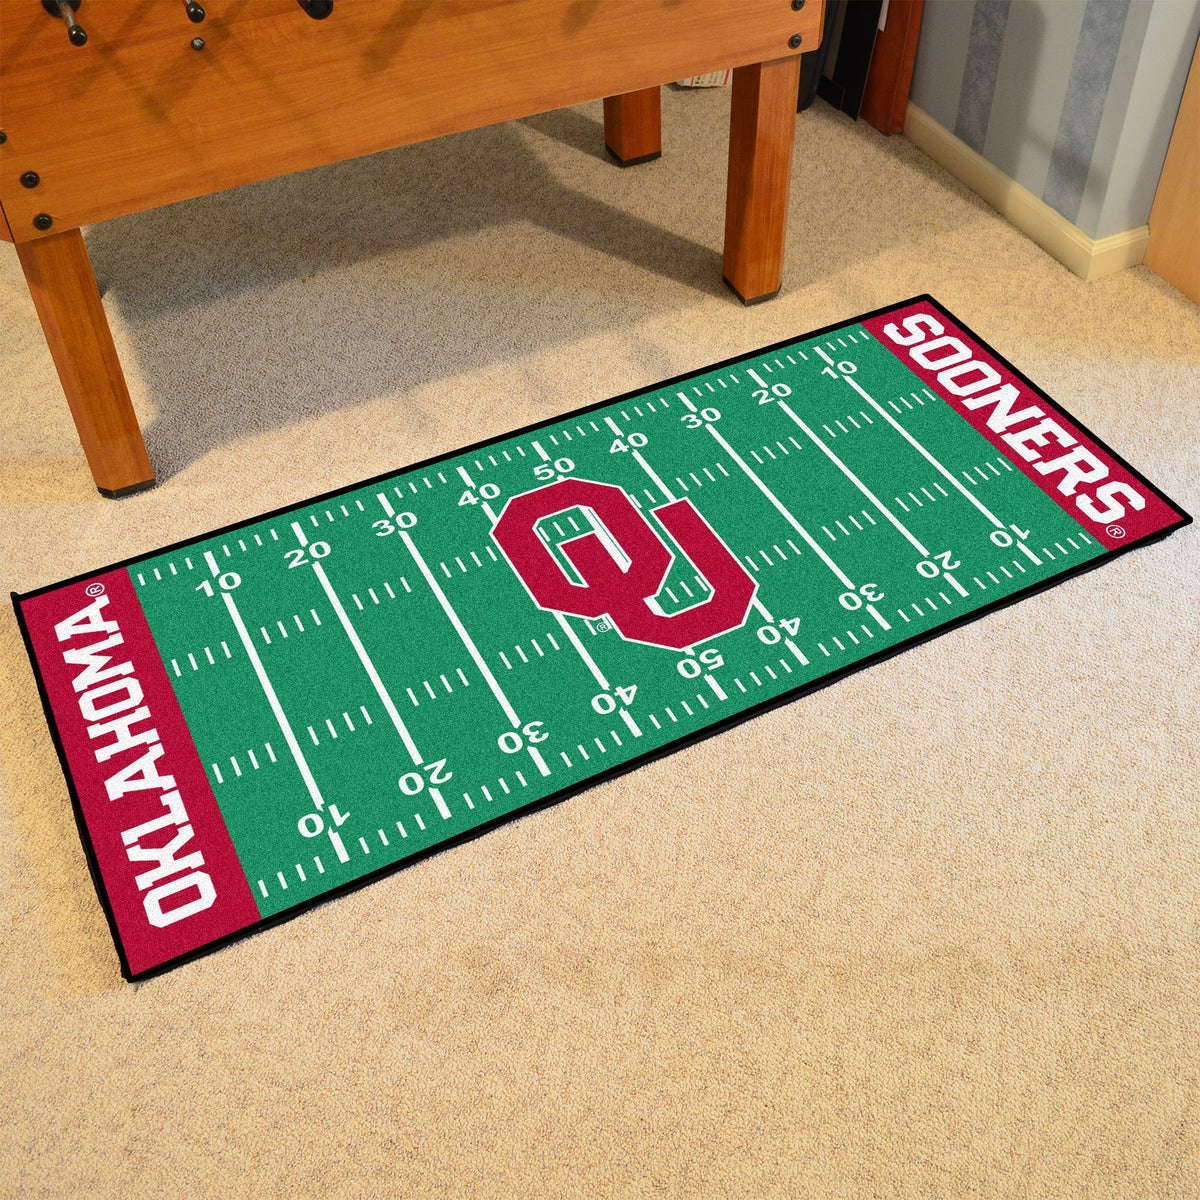 Collegiate - Football Field Runner Collegiate Mats, Rectangular Mats, Football Field Runner, Collegiate, Home Fan Mats Oklahoma